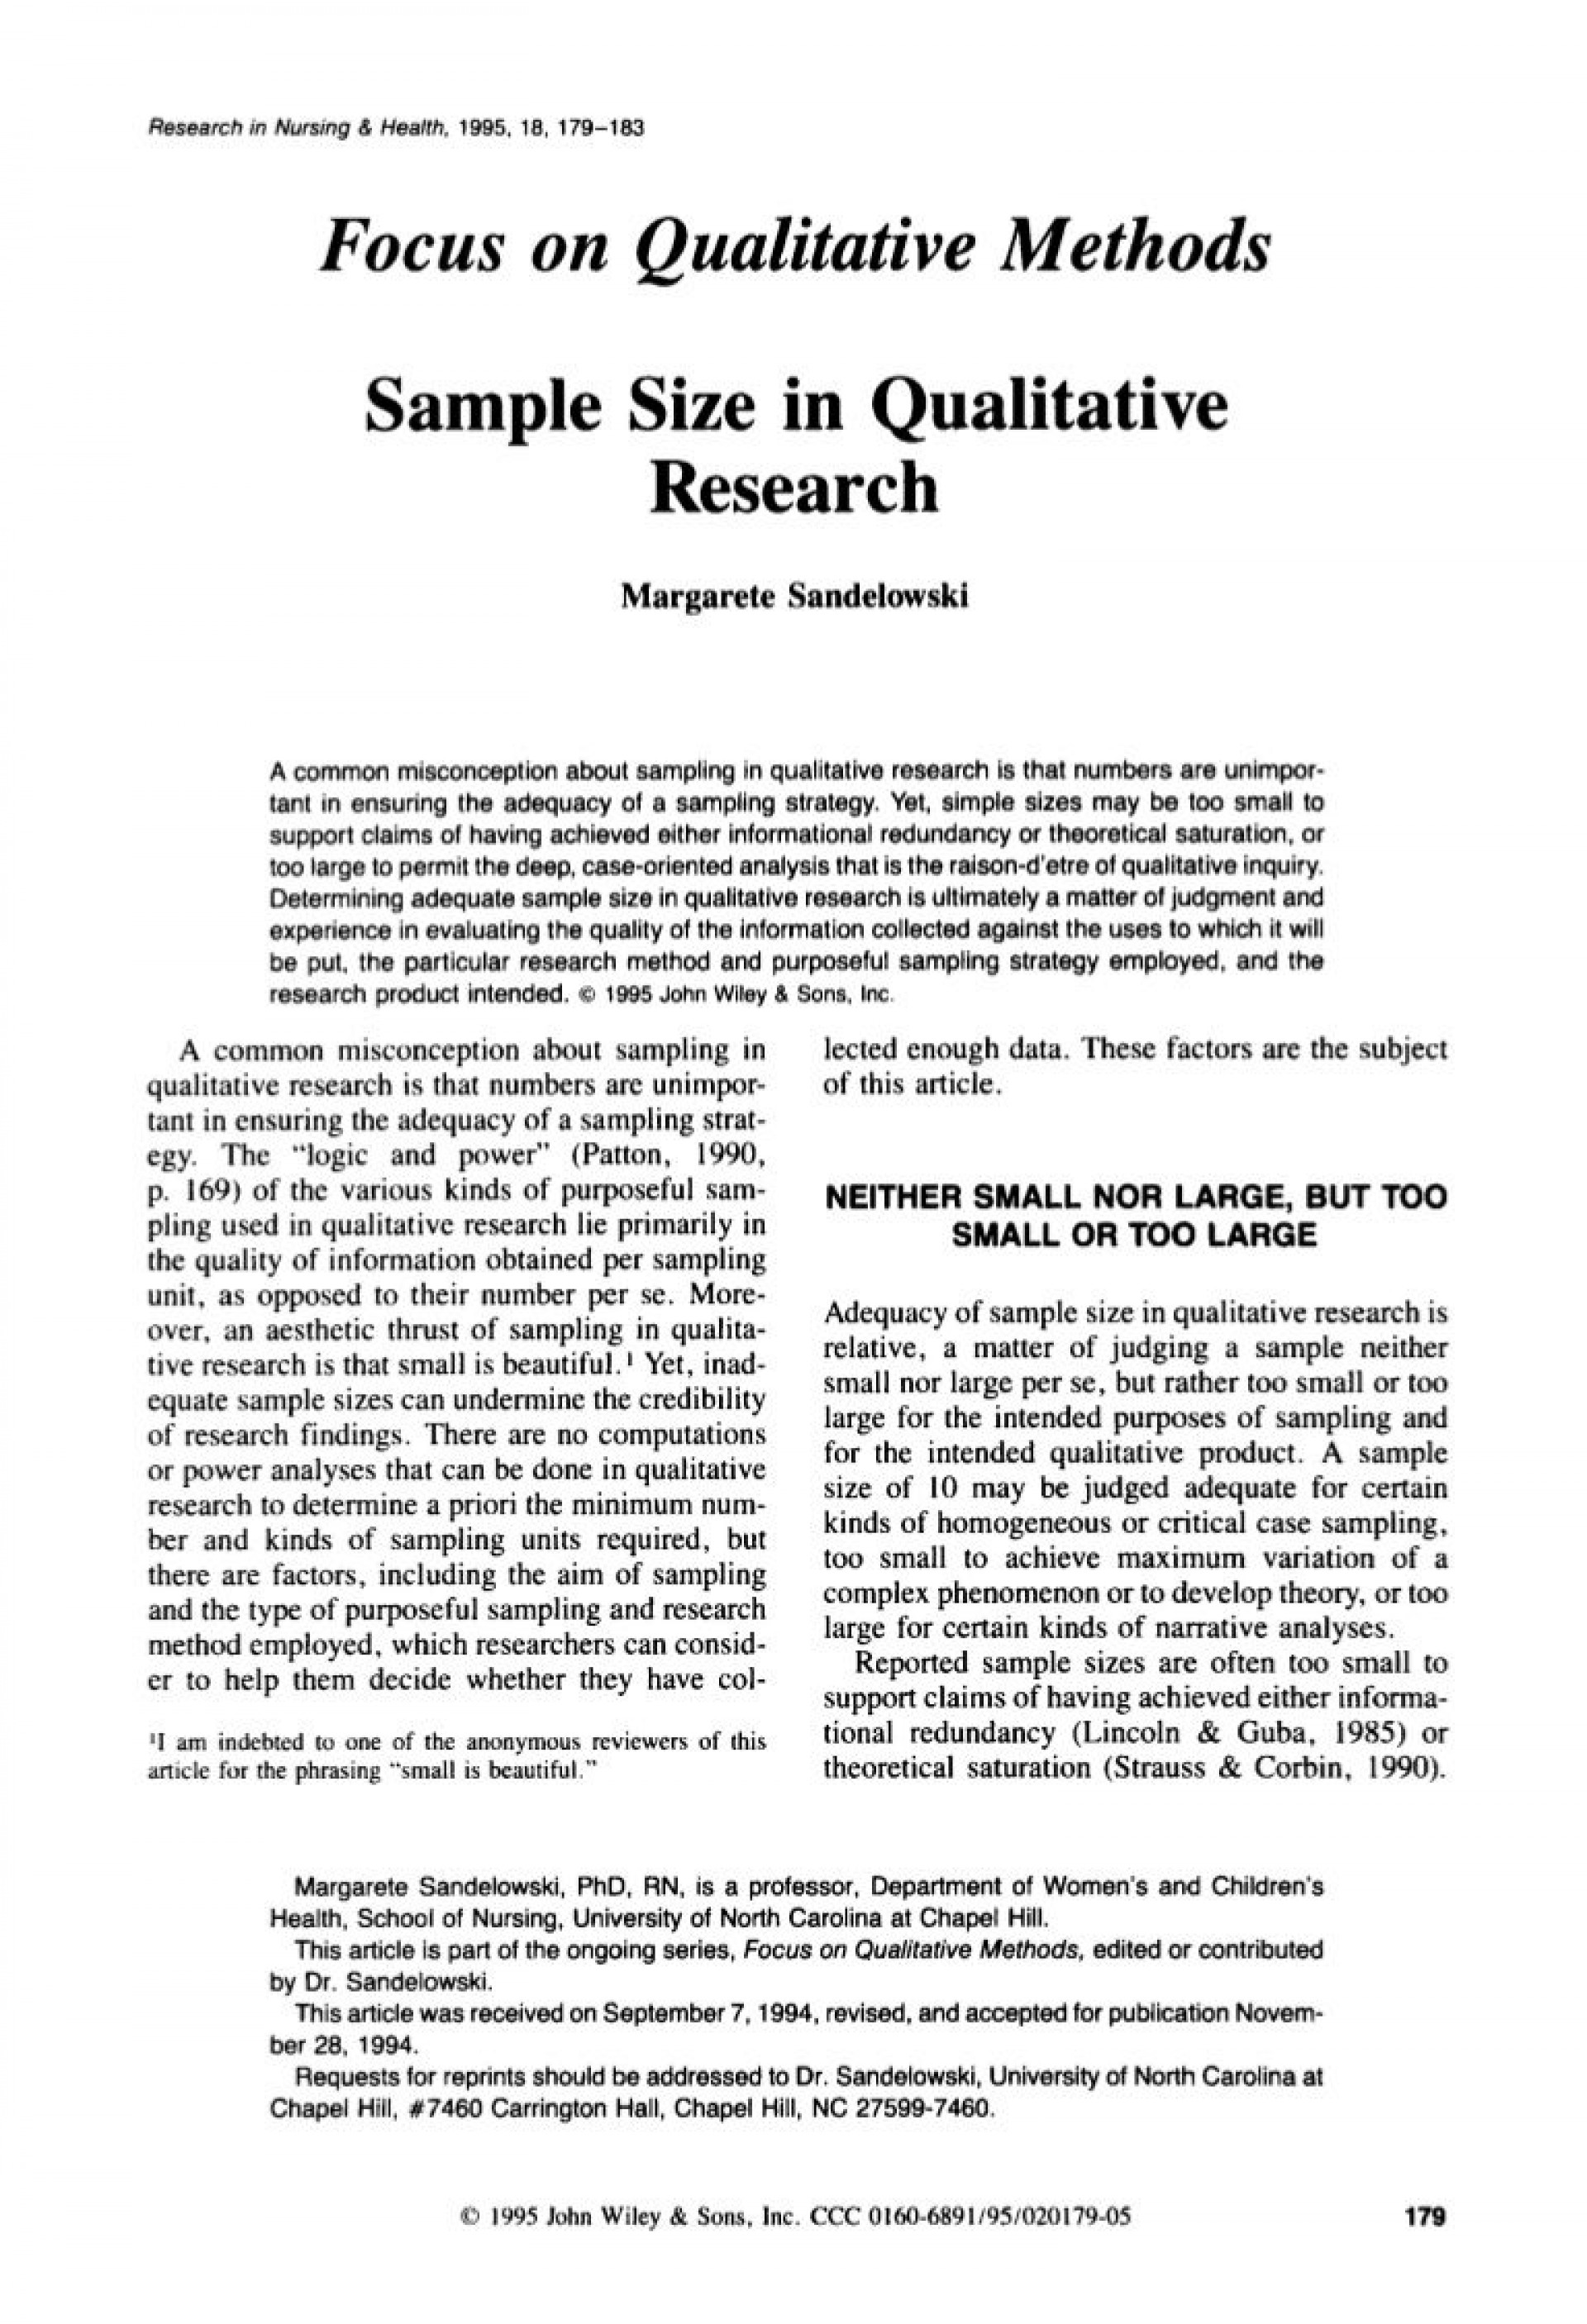 005 Qualitative Research Paper Impressive Example Examples Chapter 1 Apa 1920